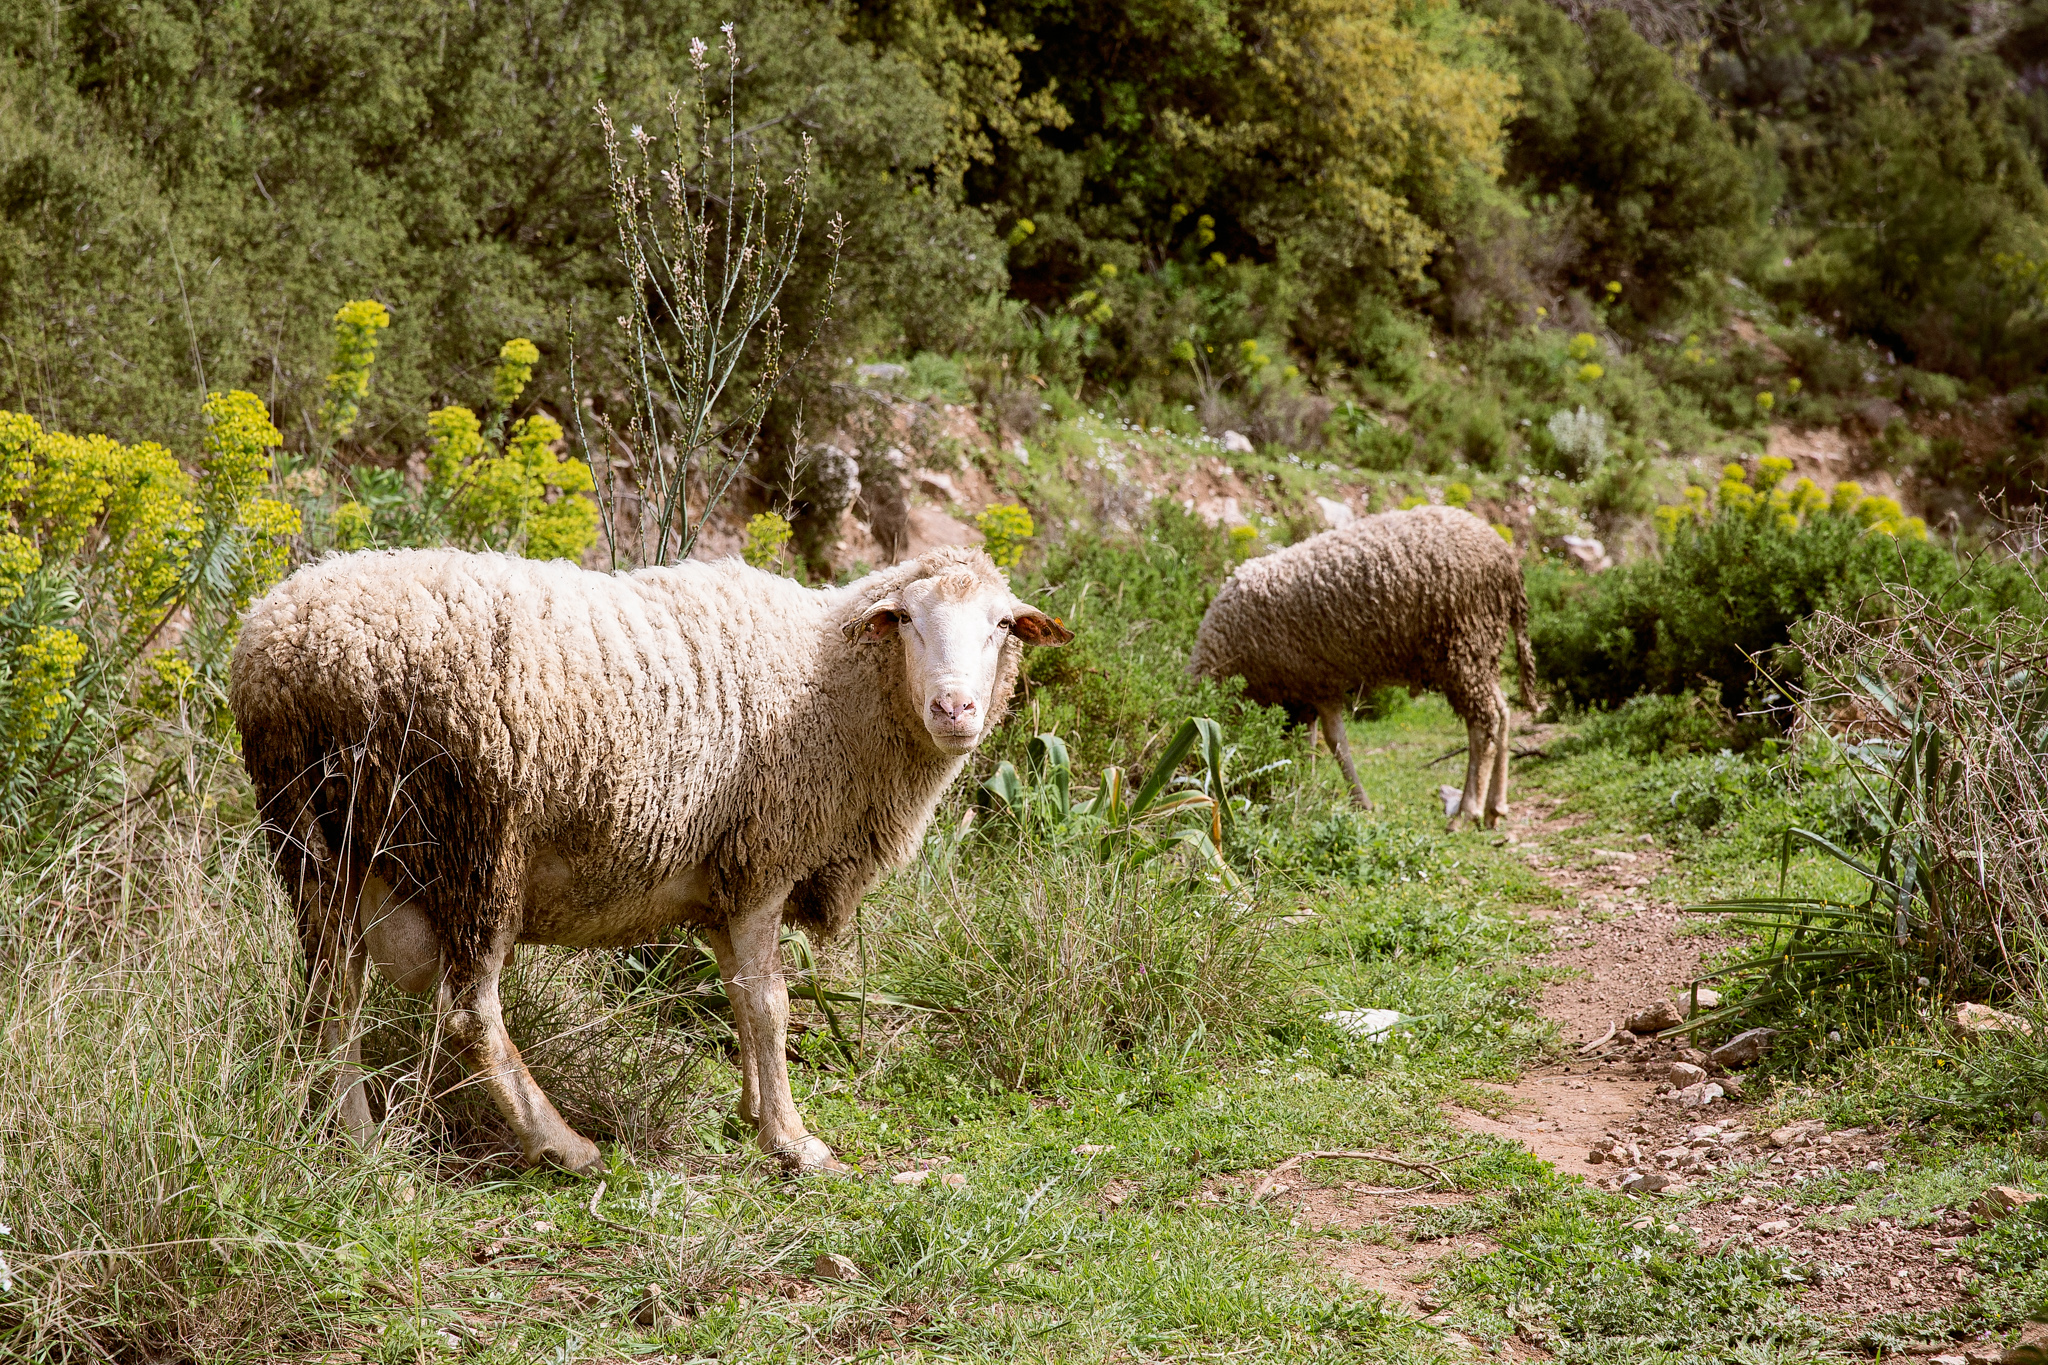 lycian-way_butterfly-valley-to-kabak-3230-sheep-watching-curiously.jpg